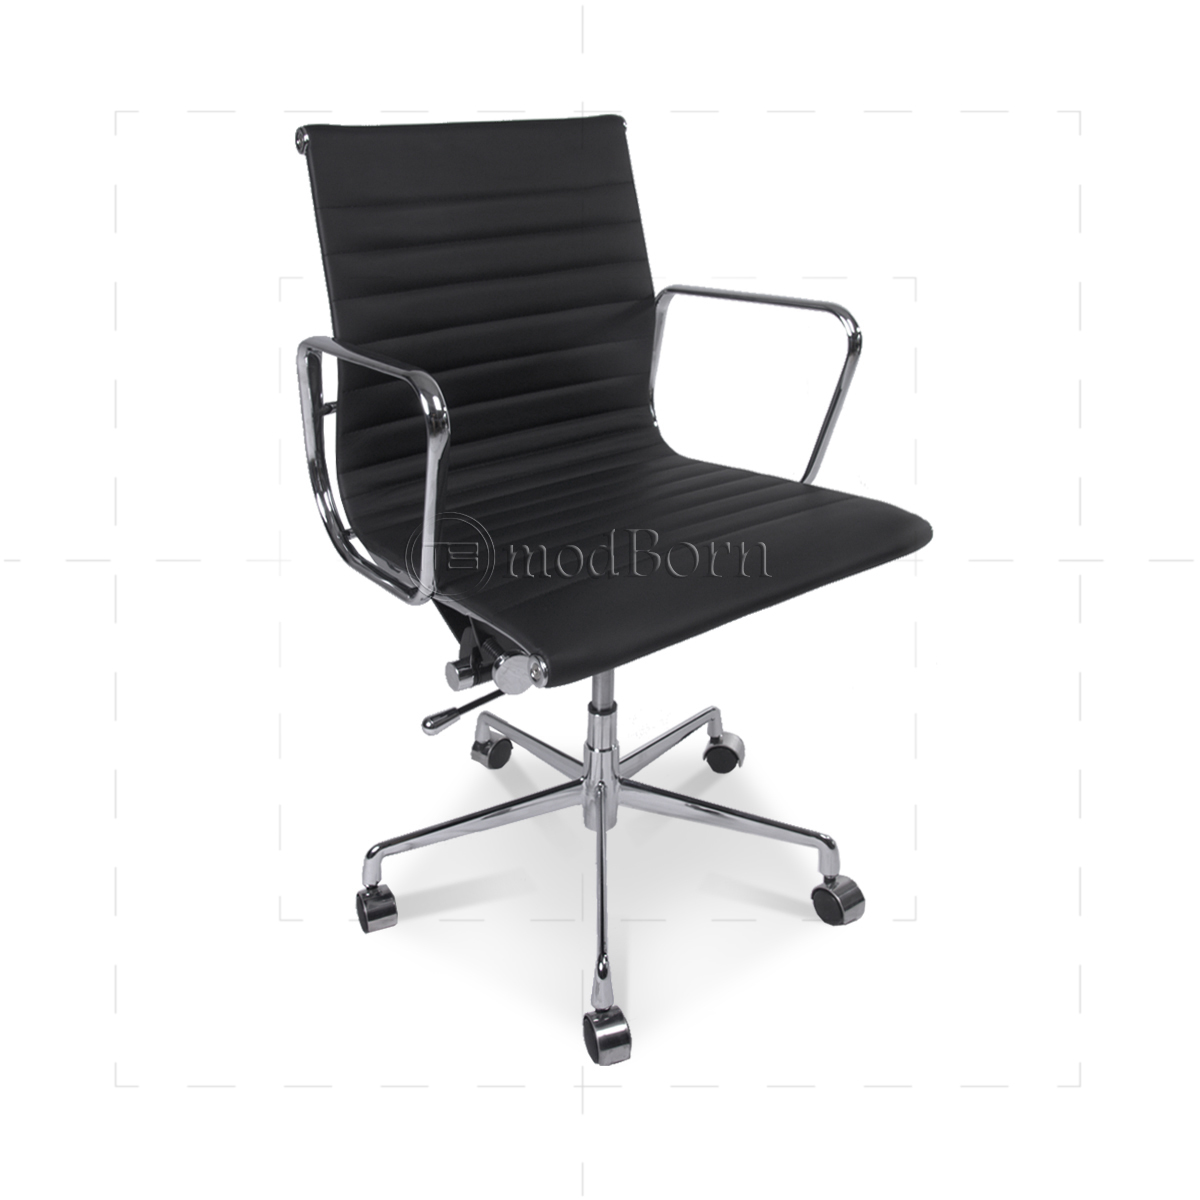 ea117 eames style office chair low back ribbed black leather bedroomsweet eames office chair replicas